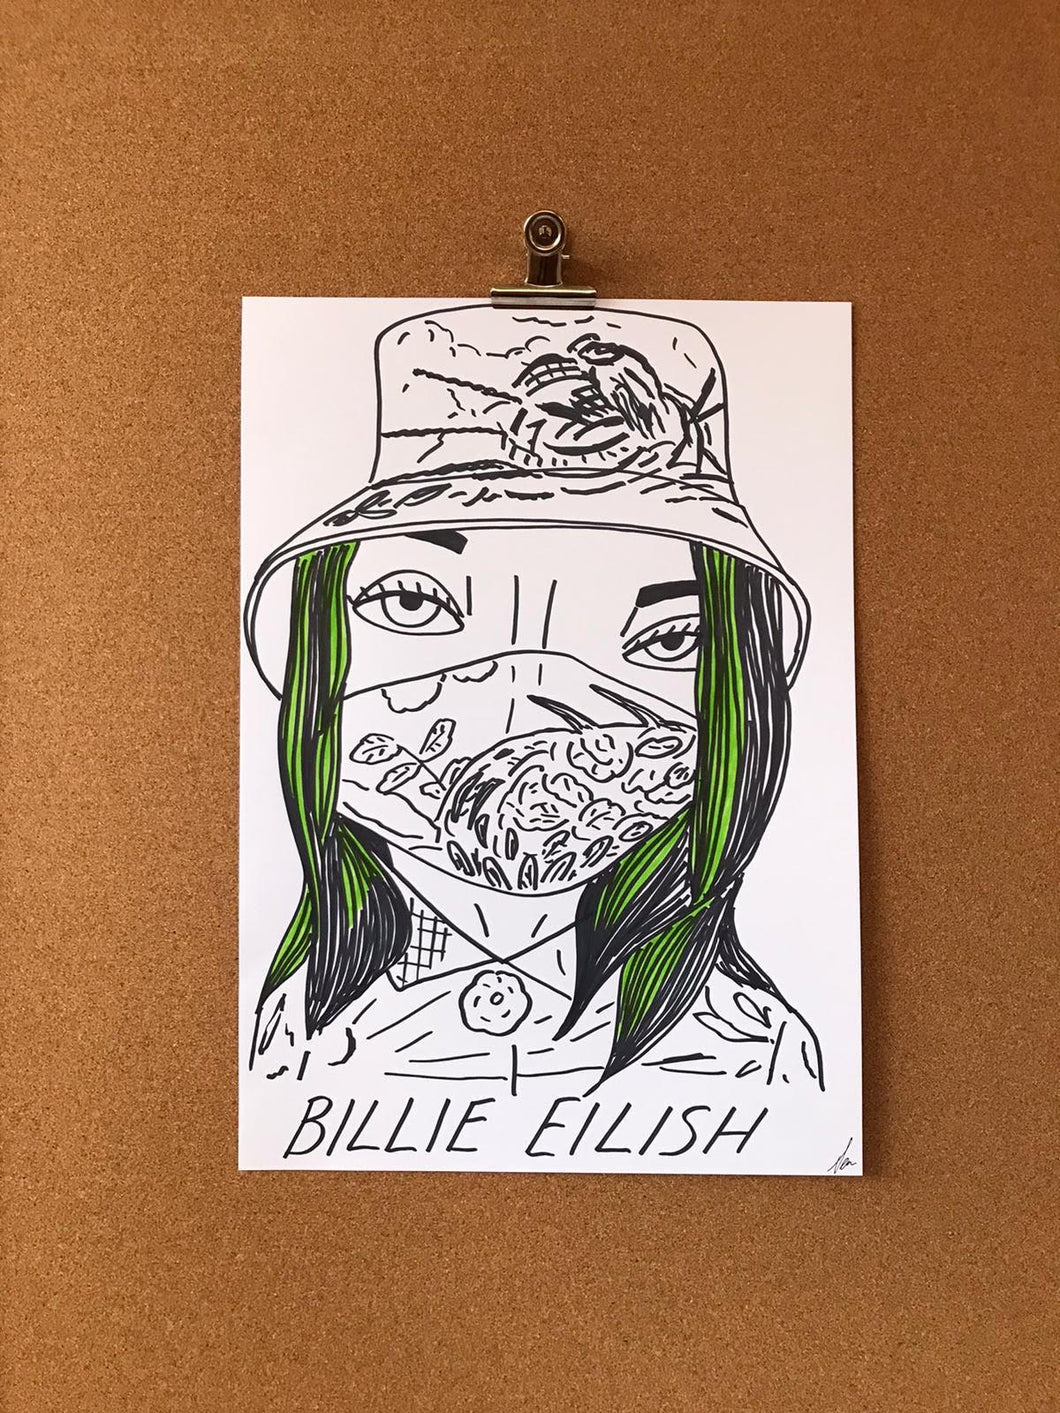 Badly Drawn Celebs - Billie Eilish - Grammys 2021 (Original Artwork - A3)